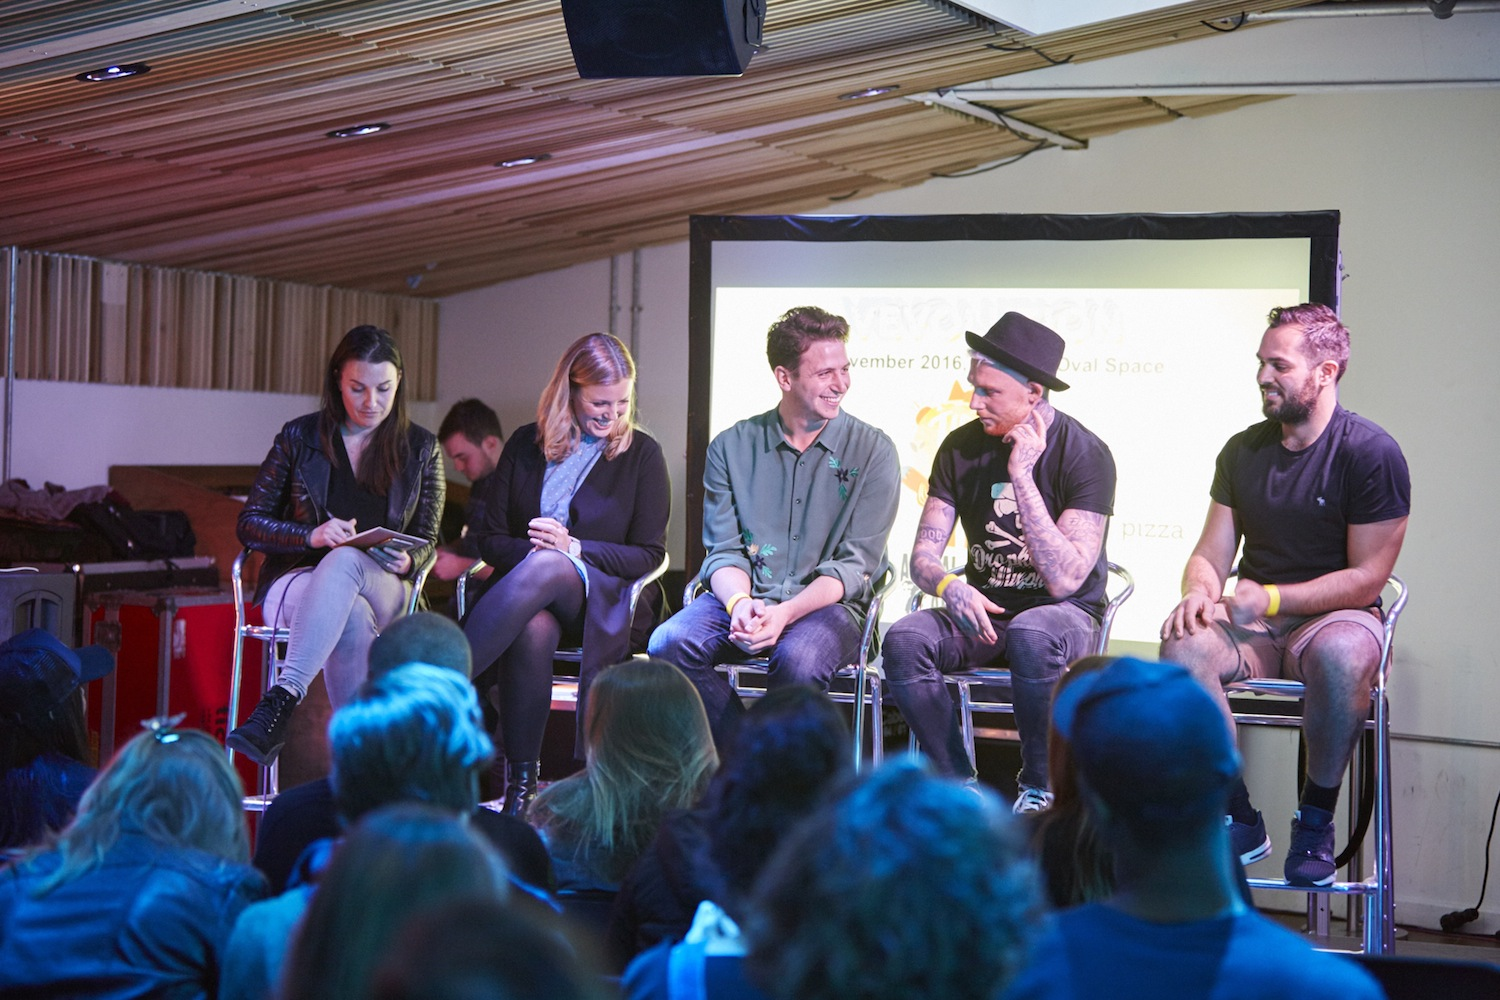 Entrepreneur Panel Discussion at Vevolution Festival last year. Panelists included Laura Stageman (VOTCH), Alex Petrides (allplants), Loui Blake (No Beef) and Cem Yildiz (What The Pitta)